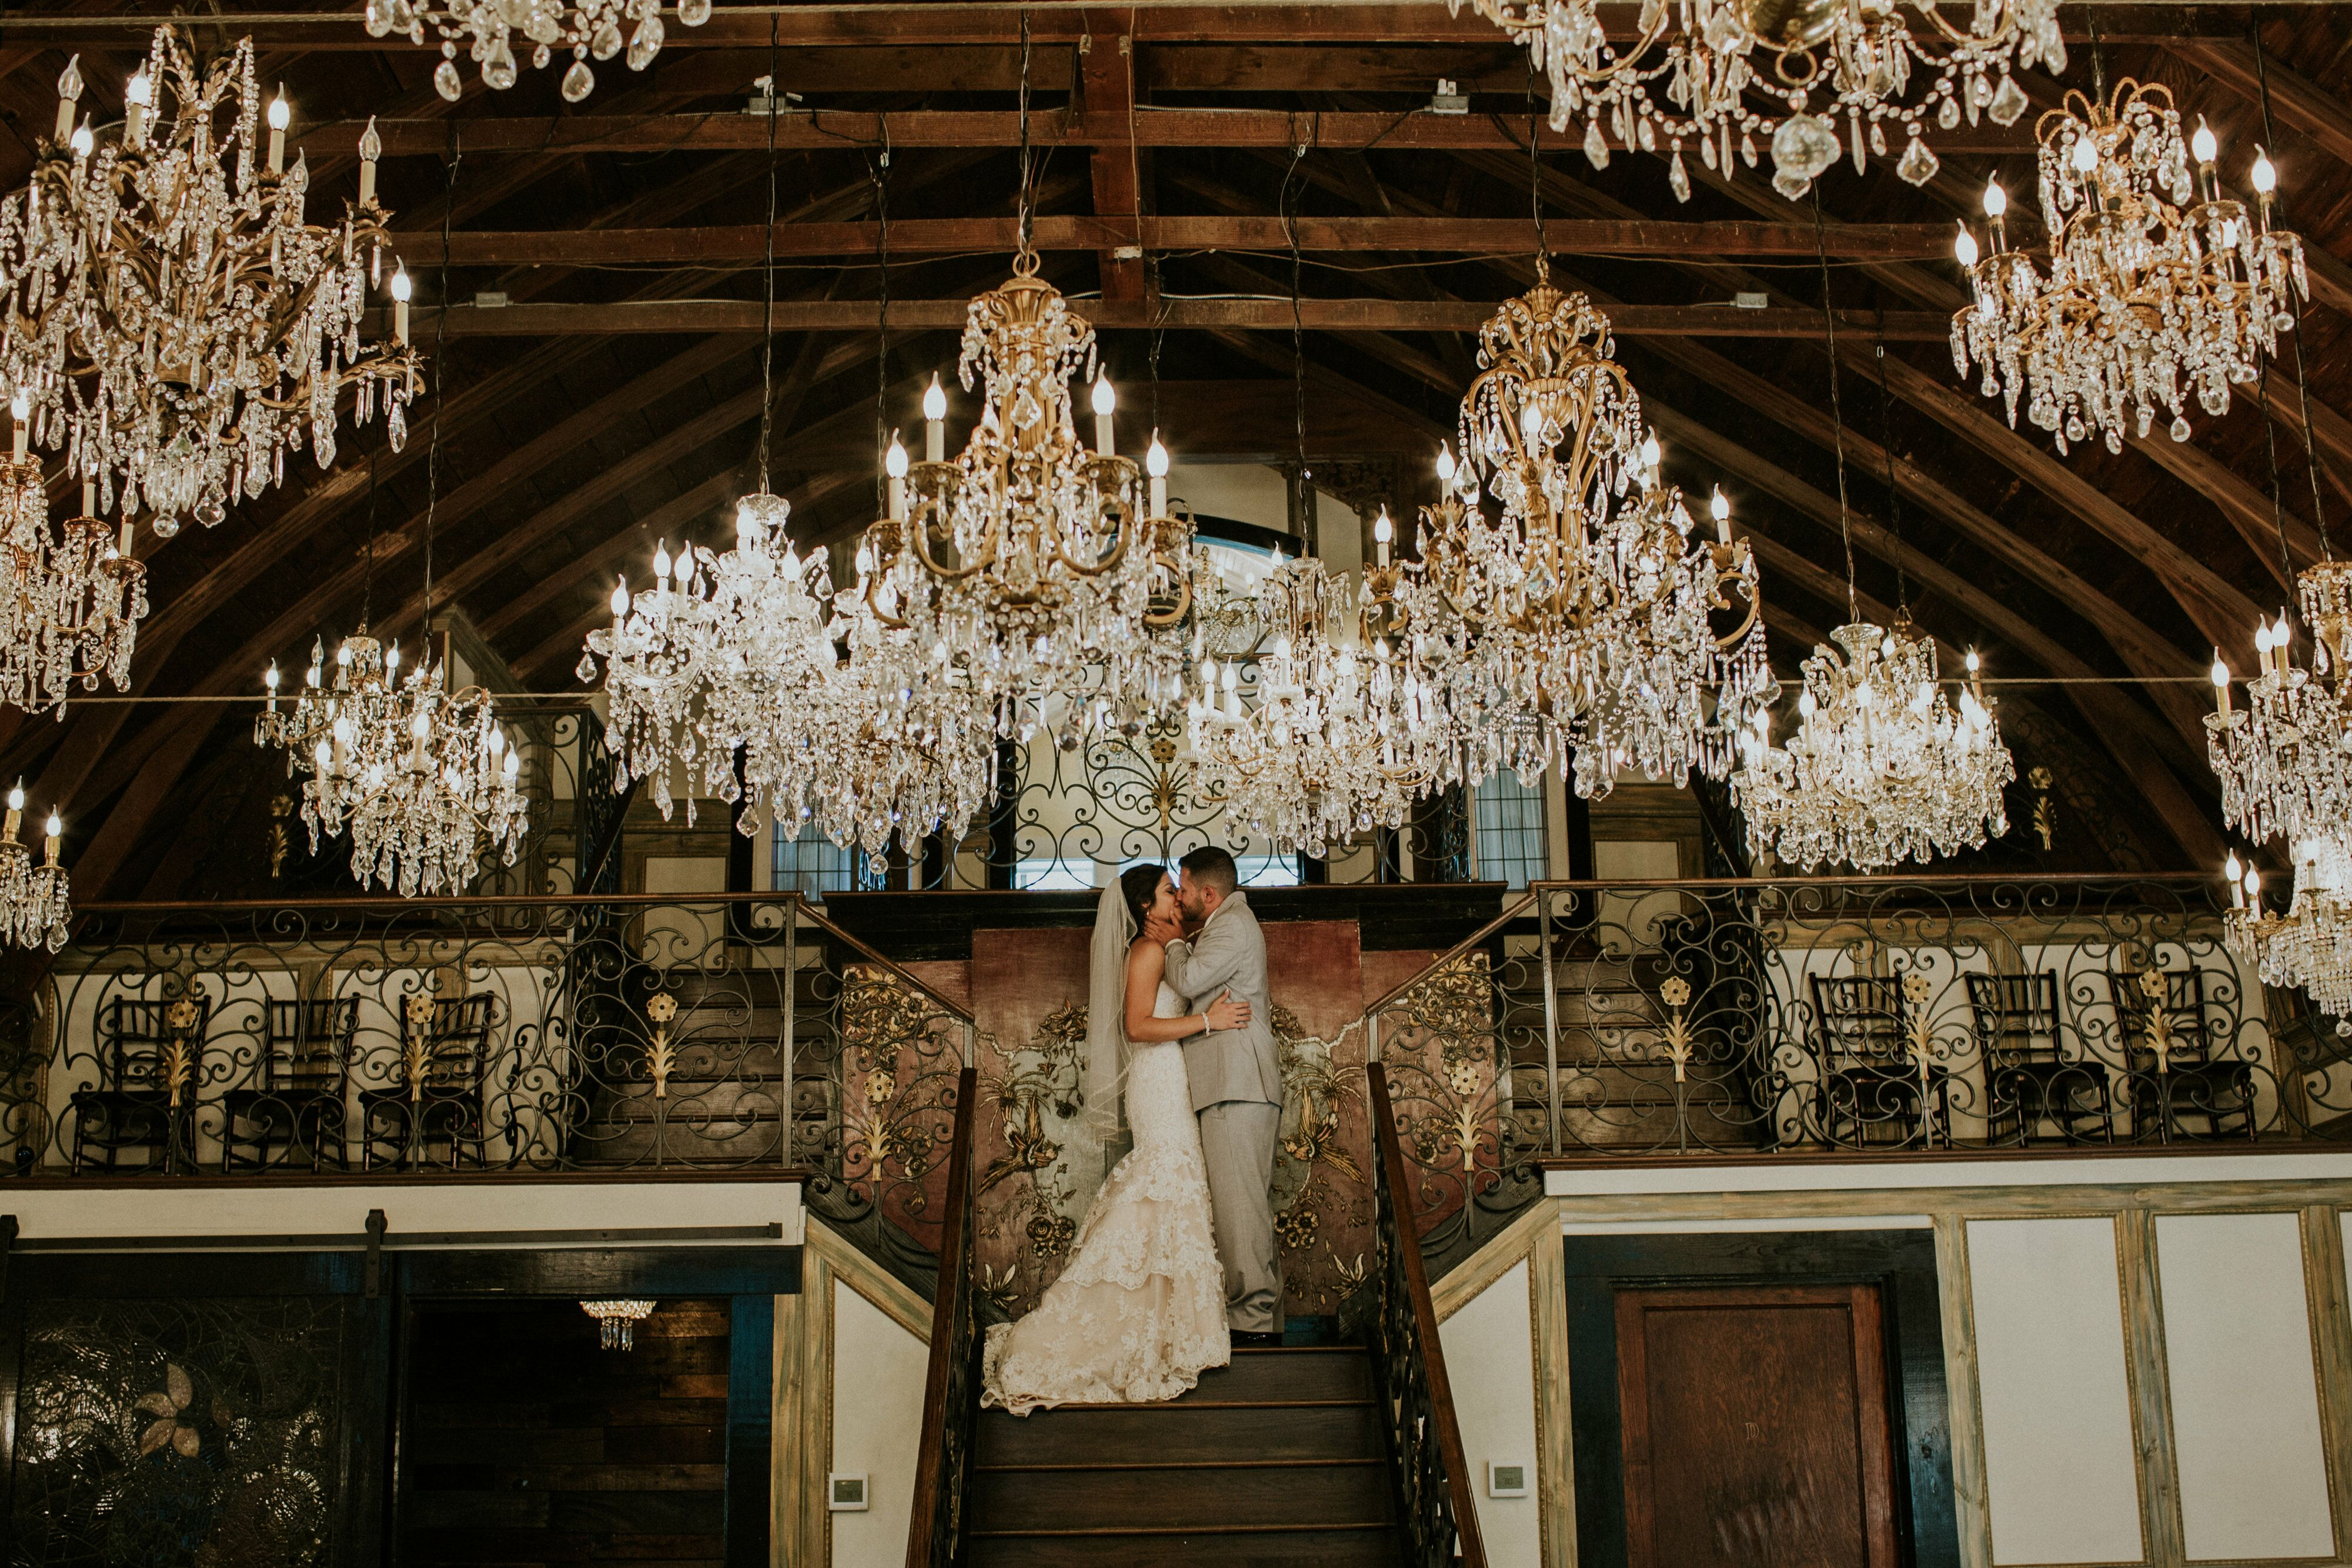 Wedding reception venues in denver co the knot lionsgate event centers dove house gatehouse junglespirit Gallery